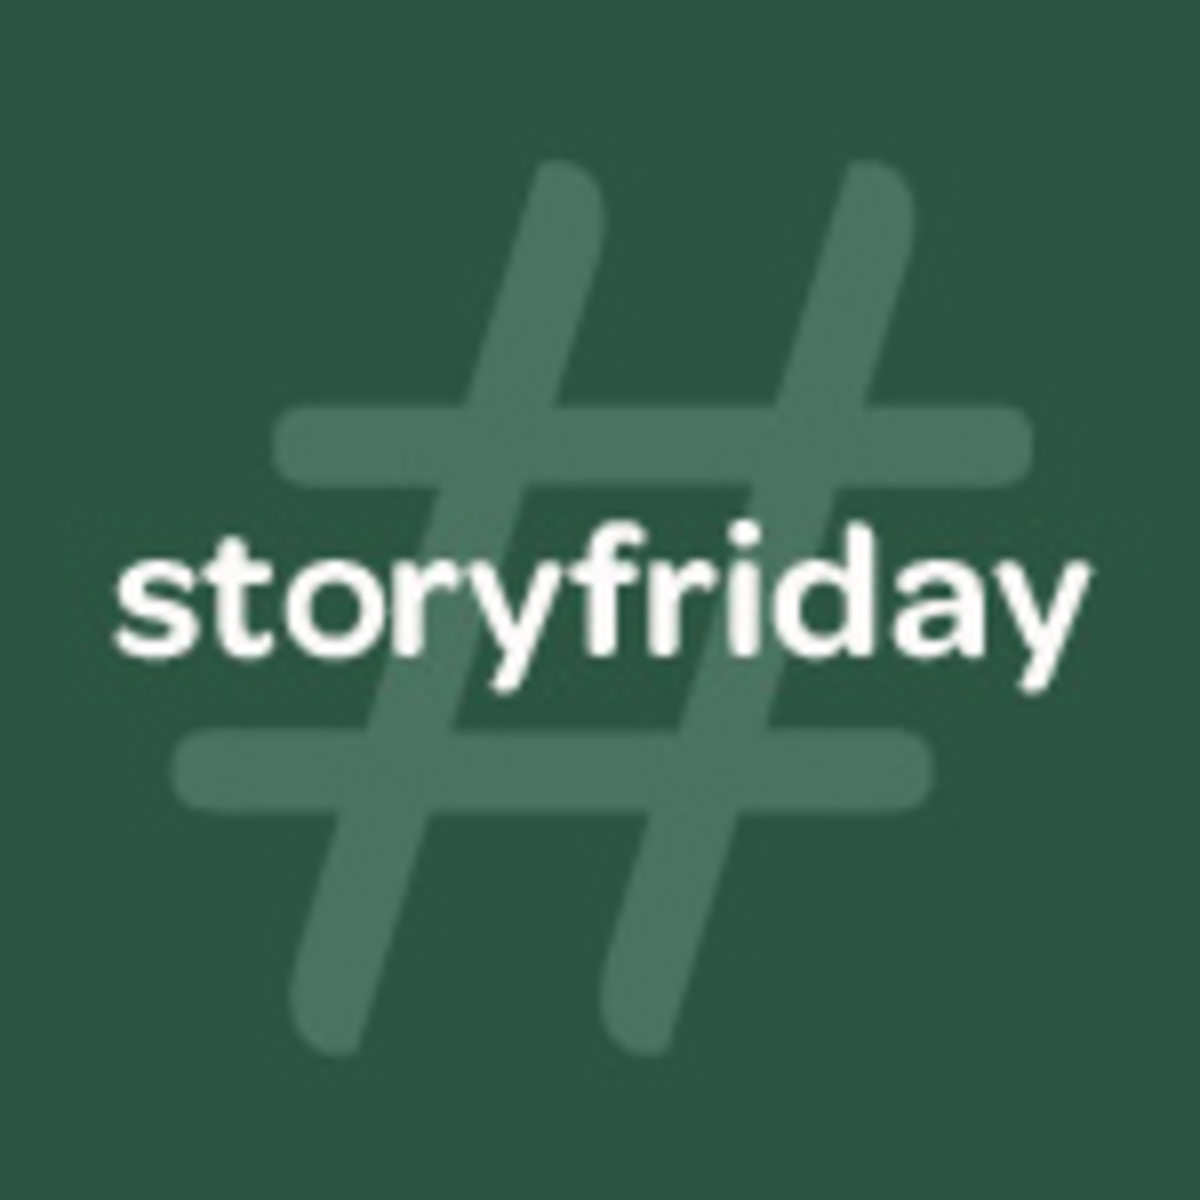 StoryFriday-green